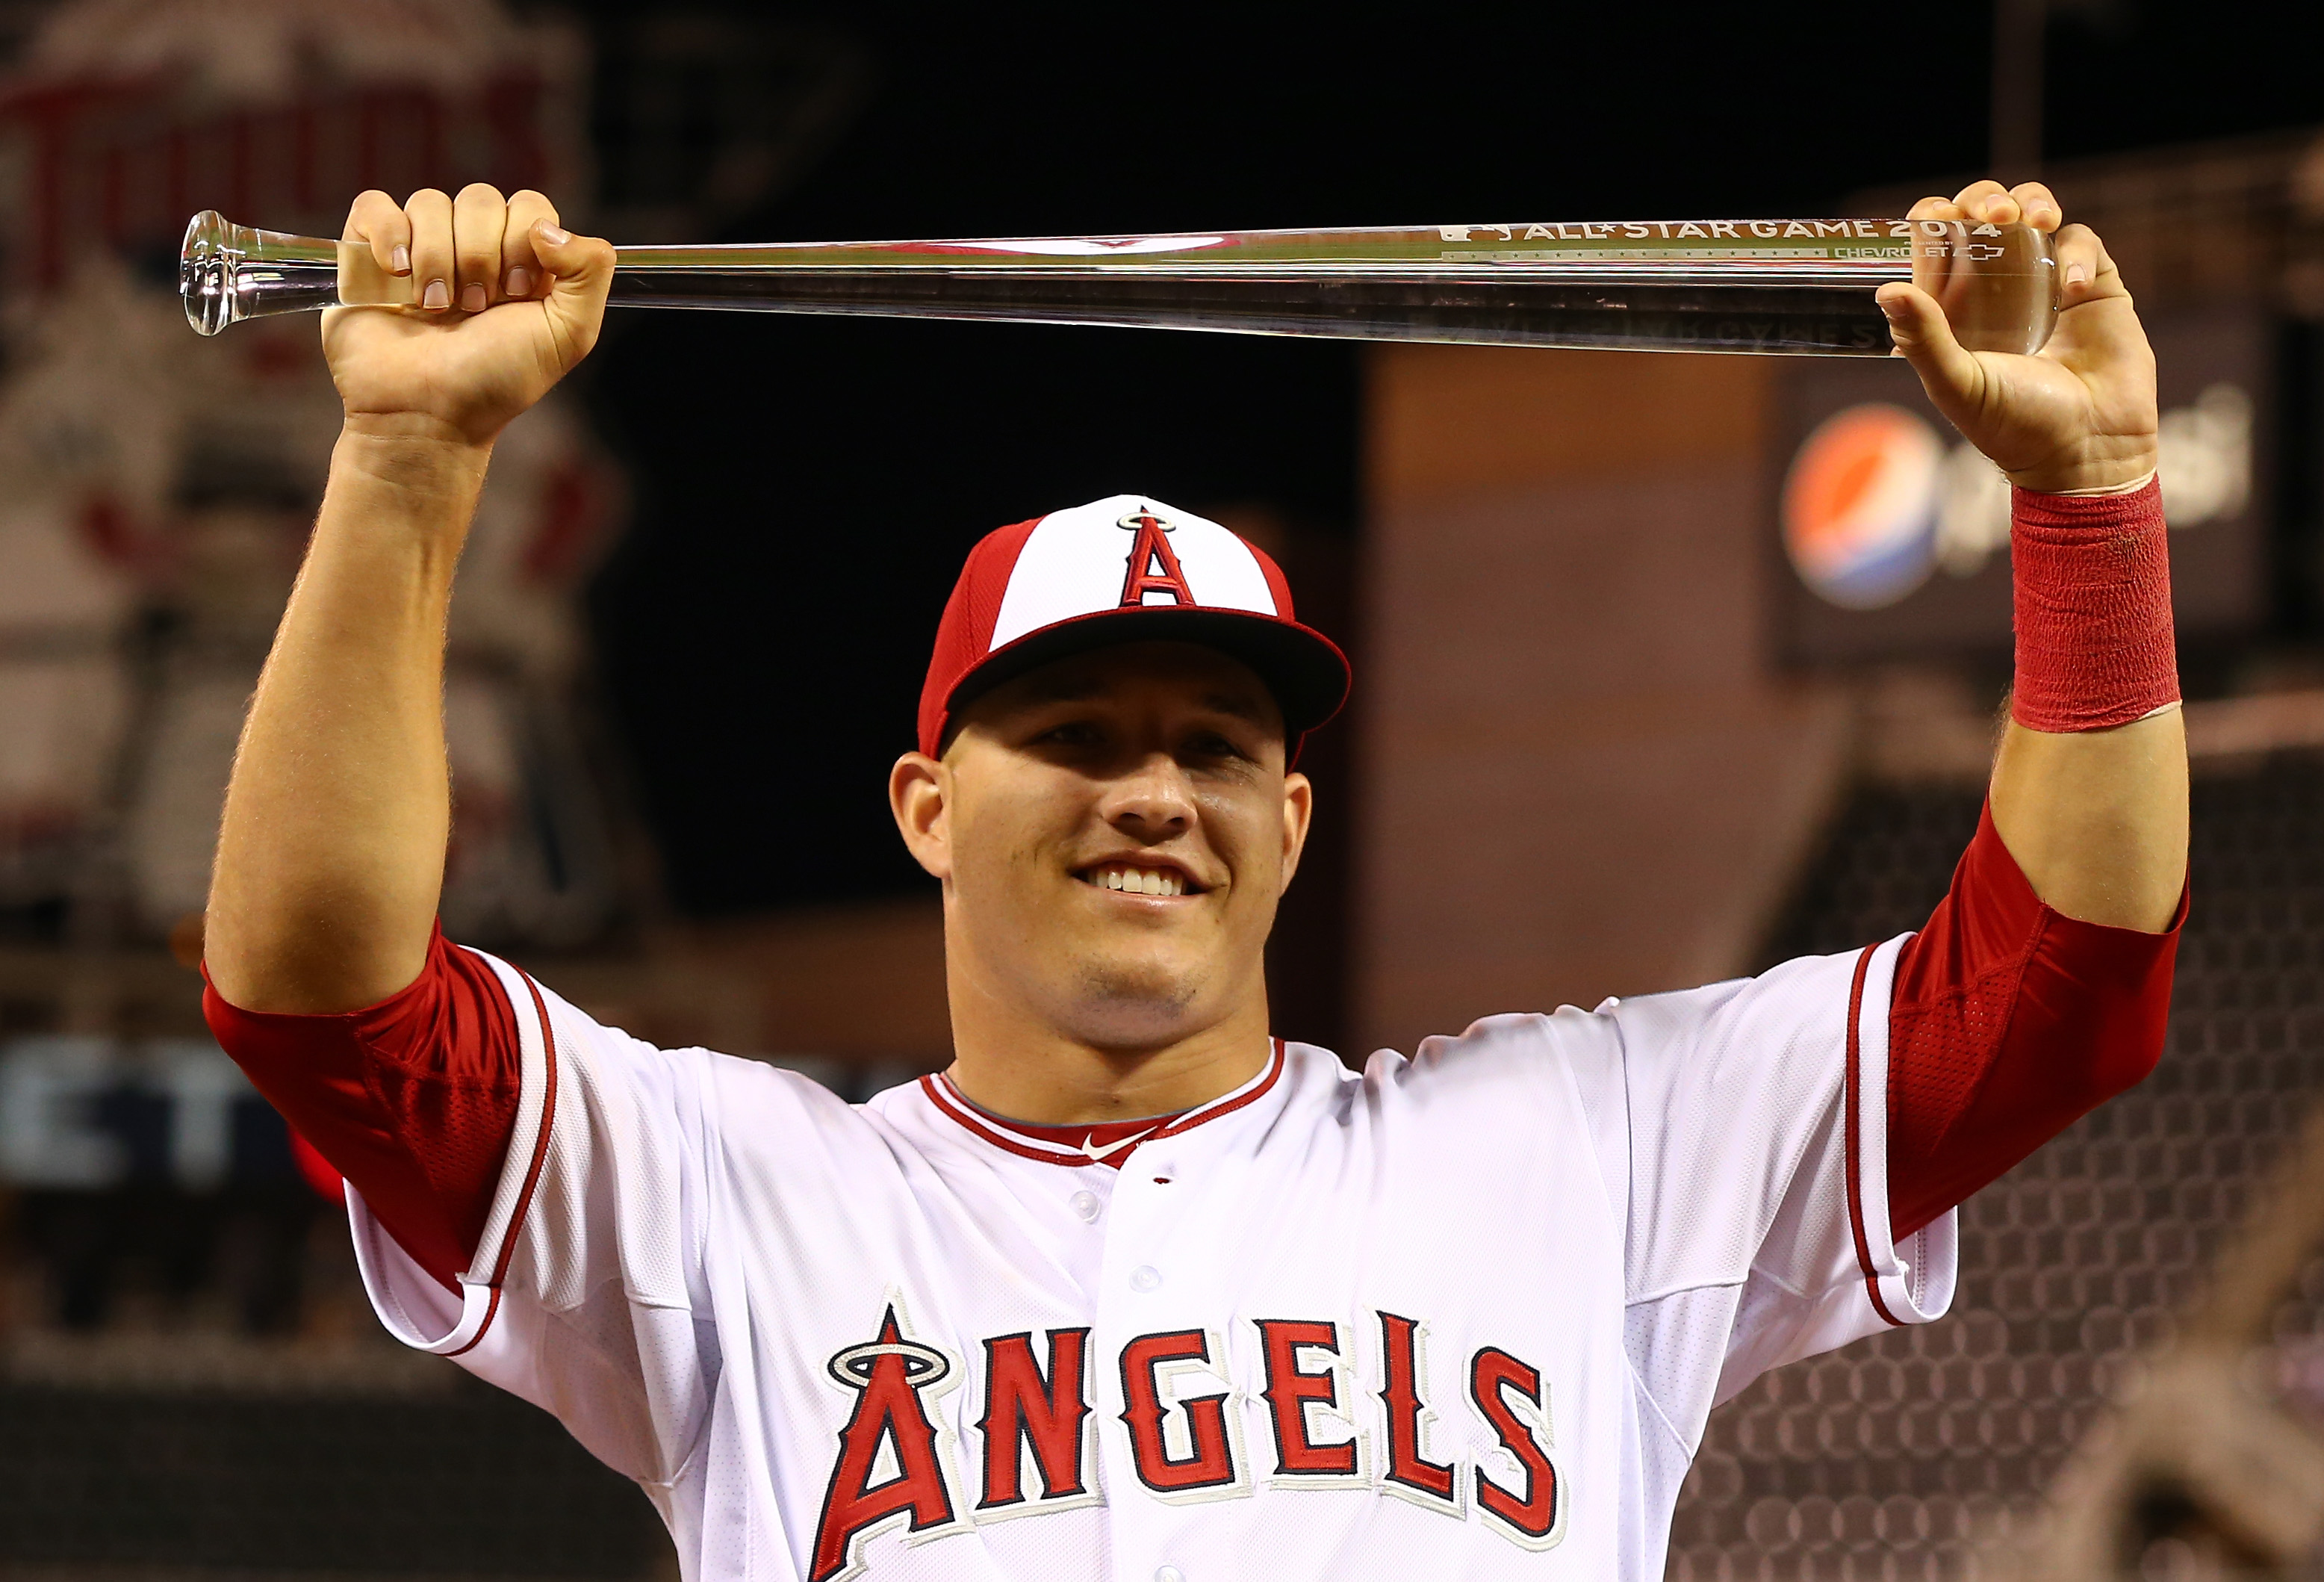 Angels outfielder Mike Trout was named All-Star Game MVP, and FOX announced it was the most-viewed ASG since 2010.